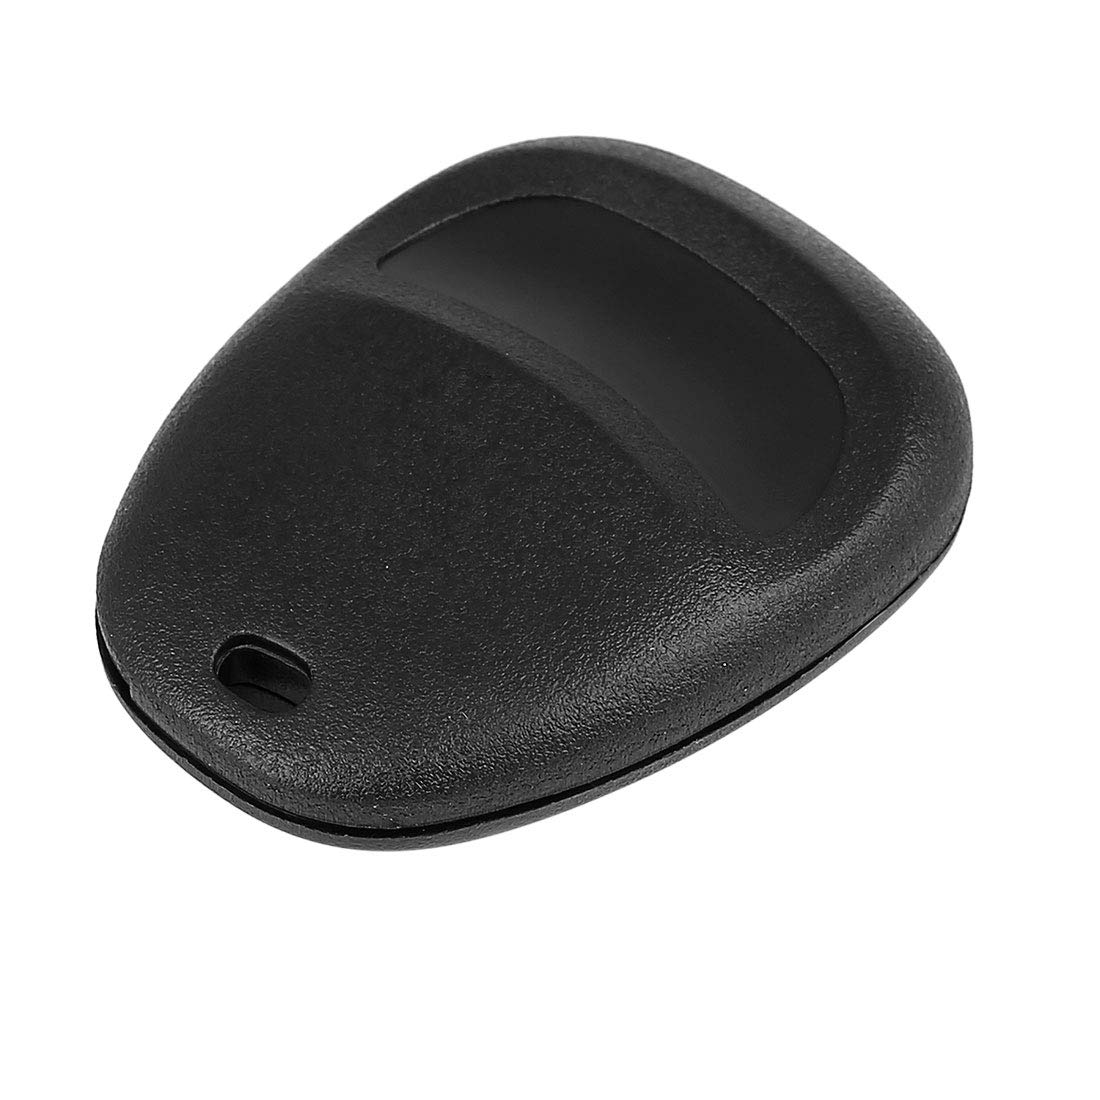 uxcell/® Replacement Keyless Entry Remote Key Fob Clicker ABO1502T 315Mhz for 2001-2004 Chevrolet Tracker